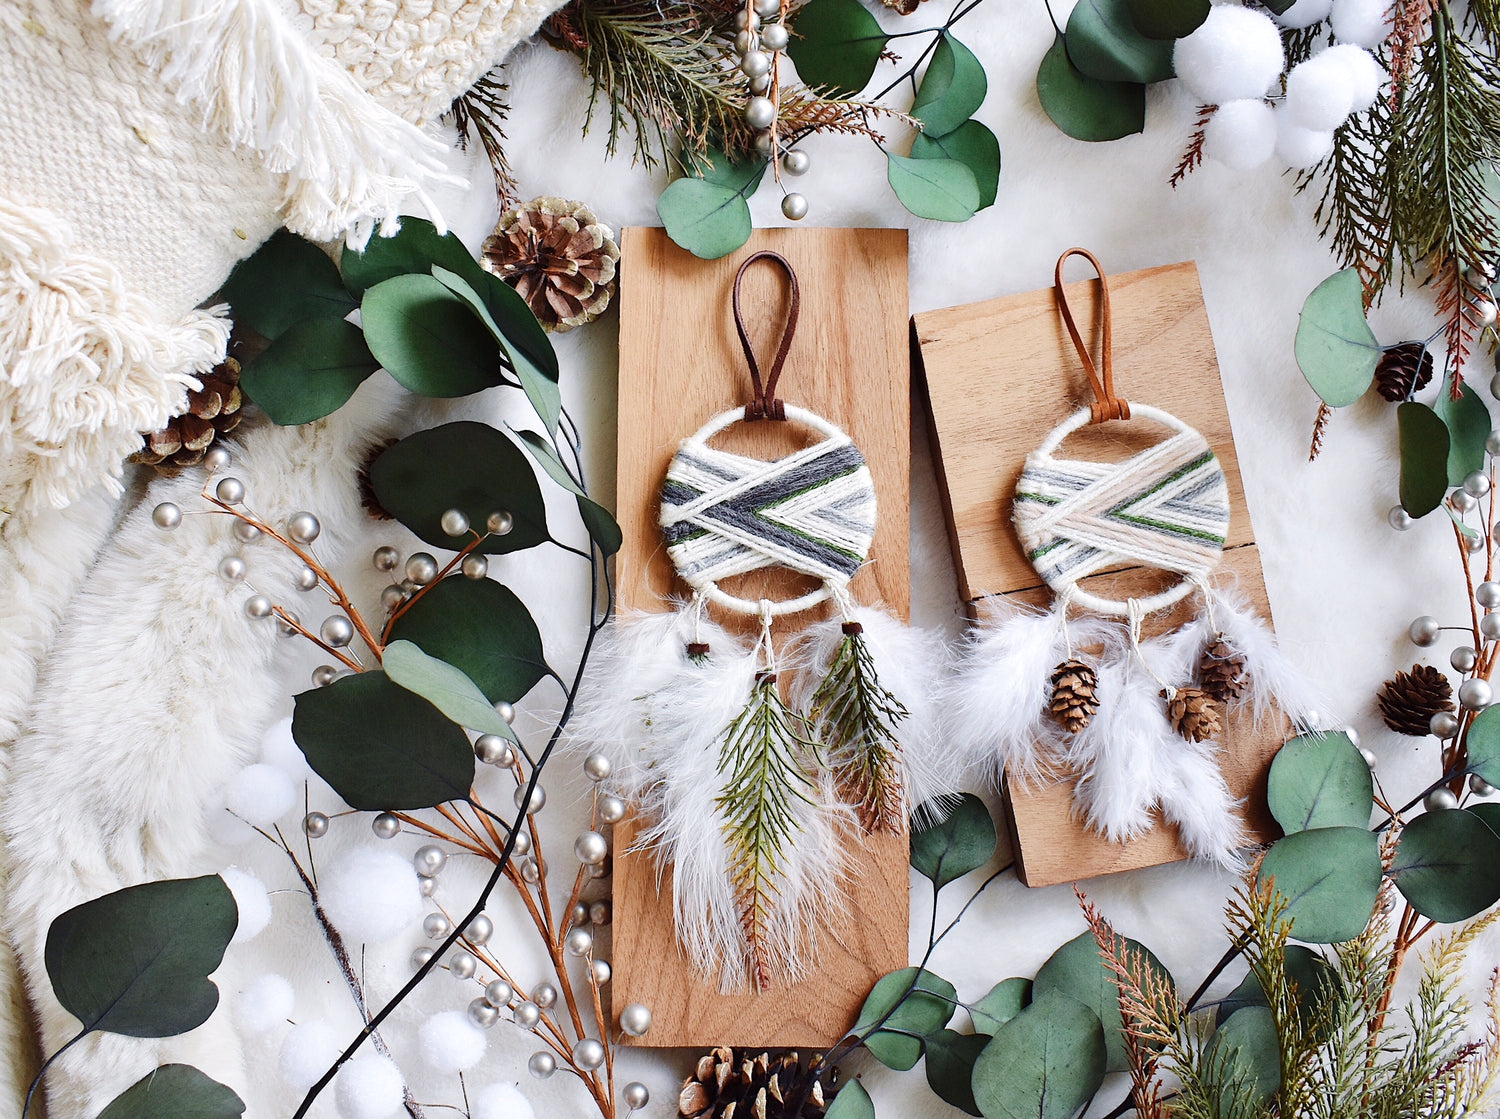 Winter Cabin Woven Dream Catcher - Evergreen